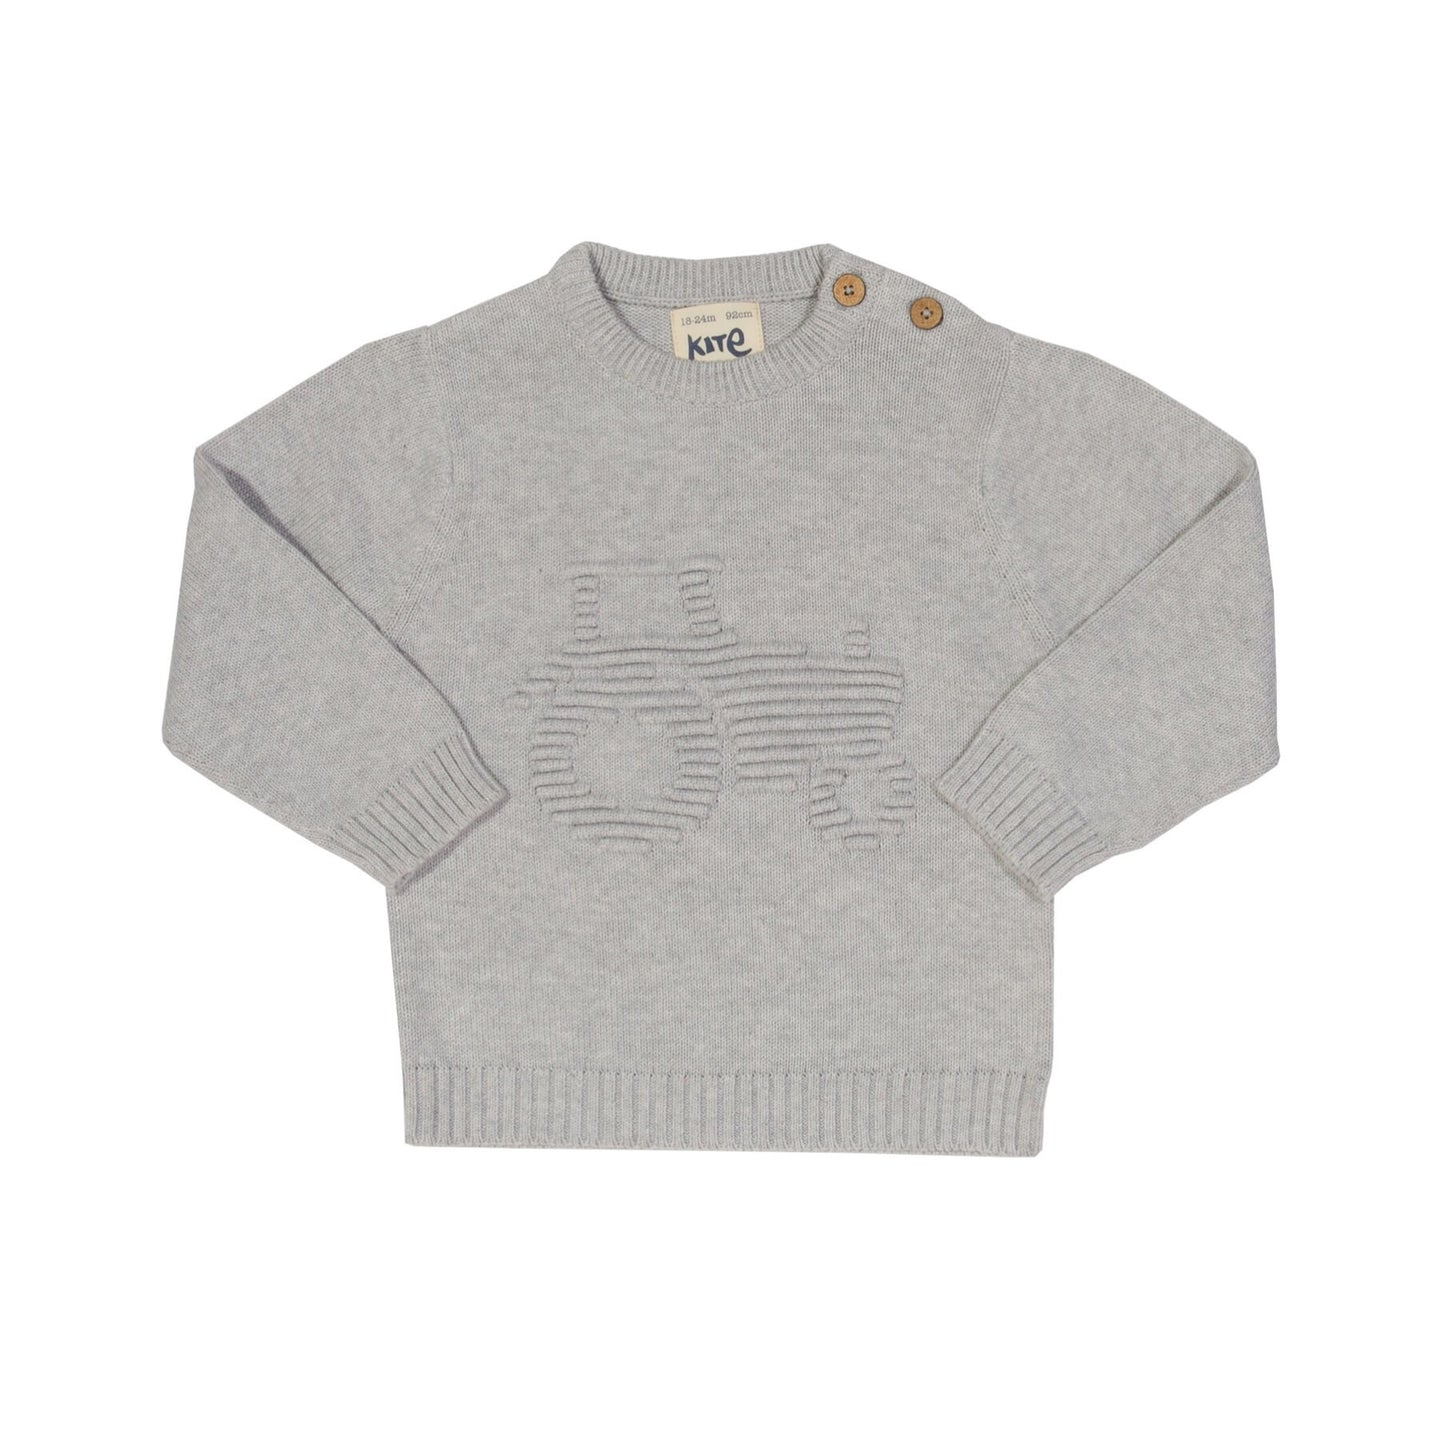 KITE organic cotton tractor sweater (0-24 months)